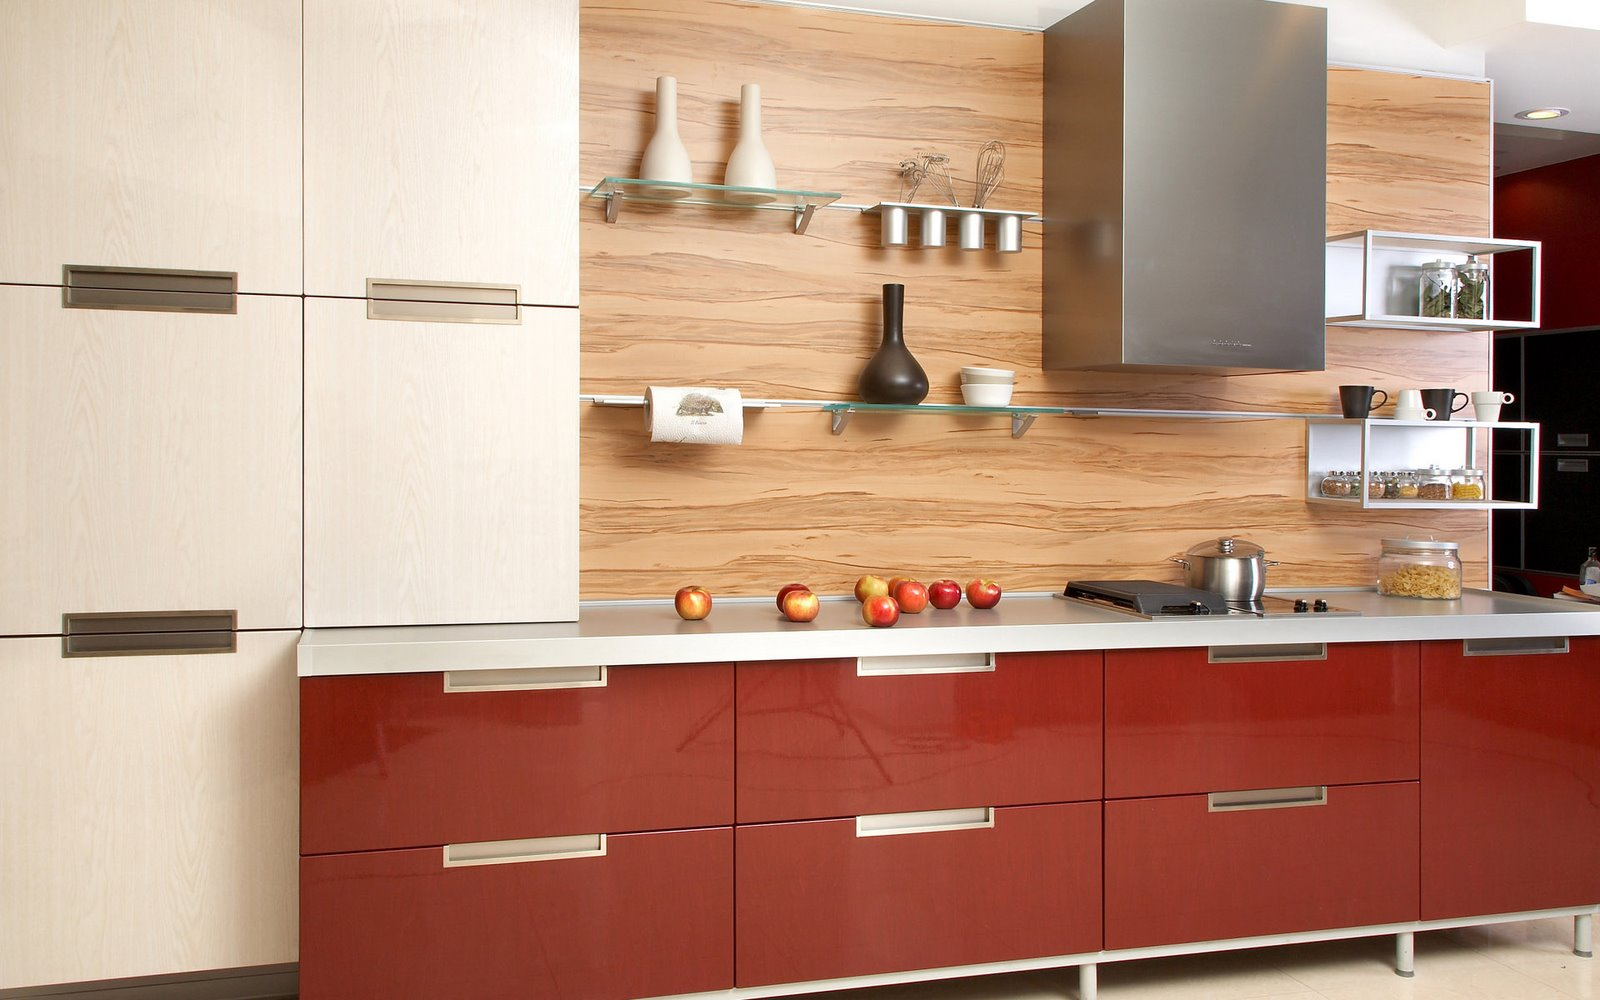 kitchen remodeling design on Italian design, hi-end kitchen. The clean lines and sleek look is so ...